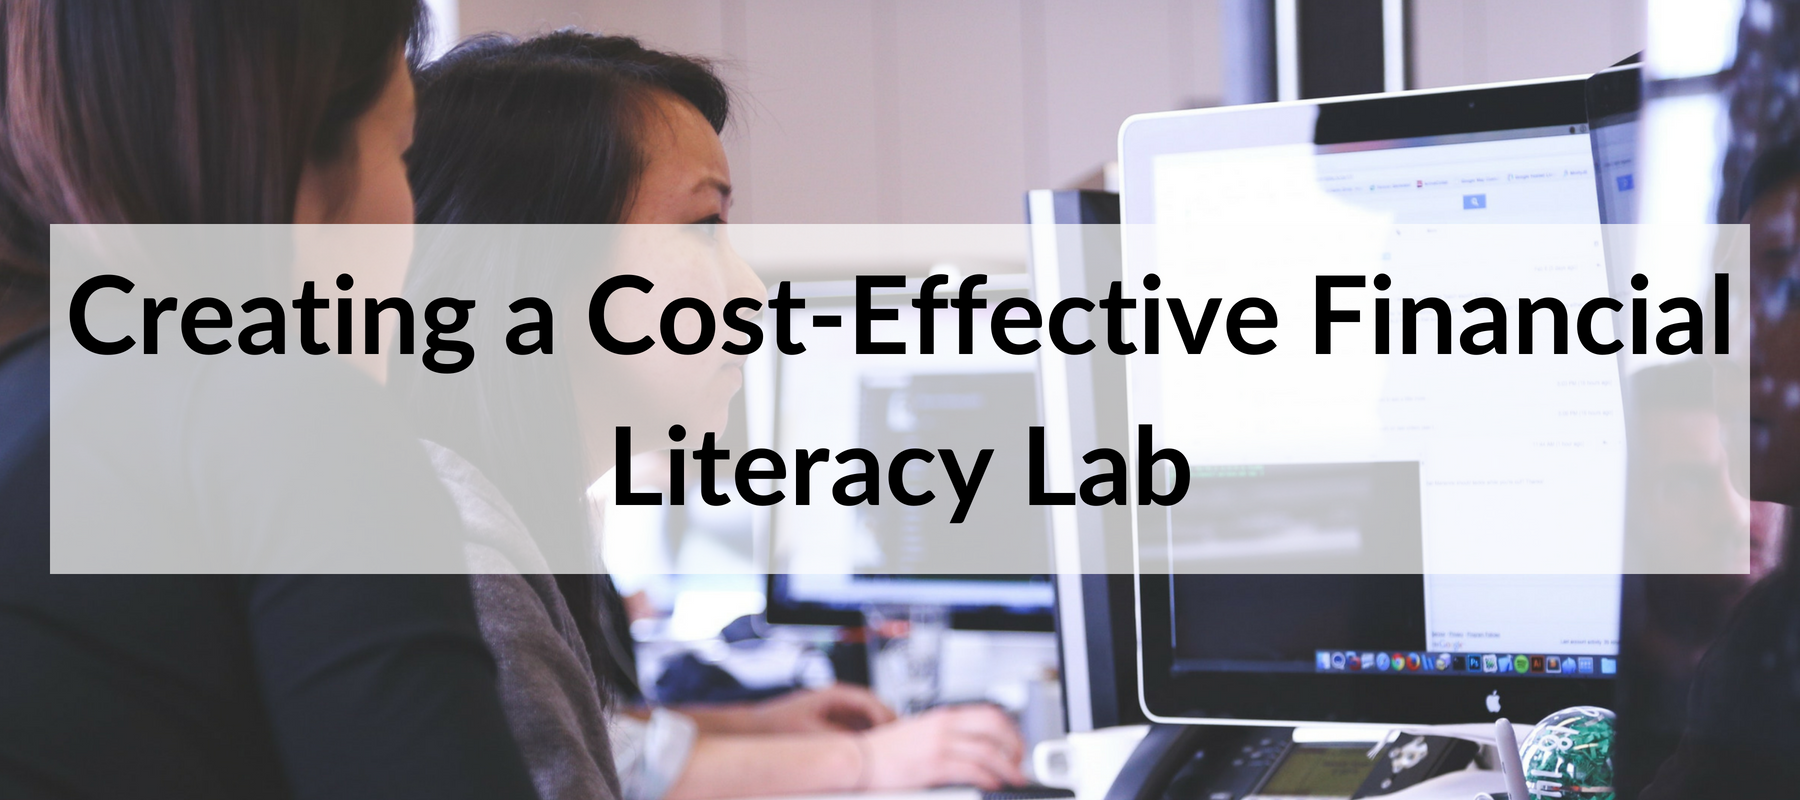 Creating a Cost-Effective Financial Literacy Lab